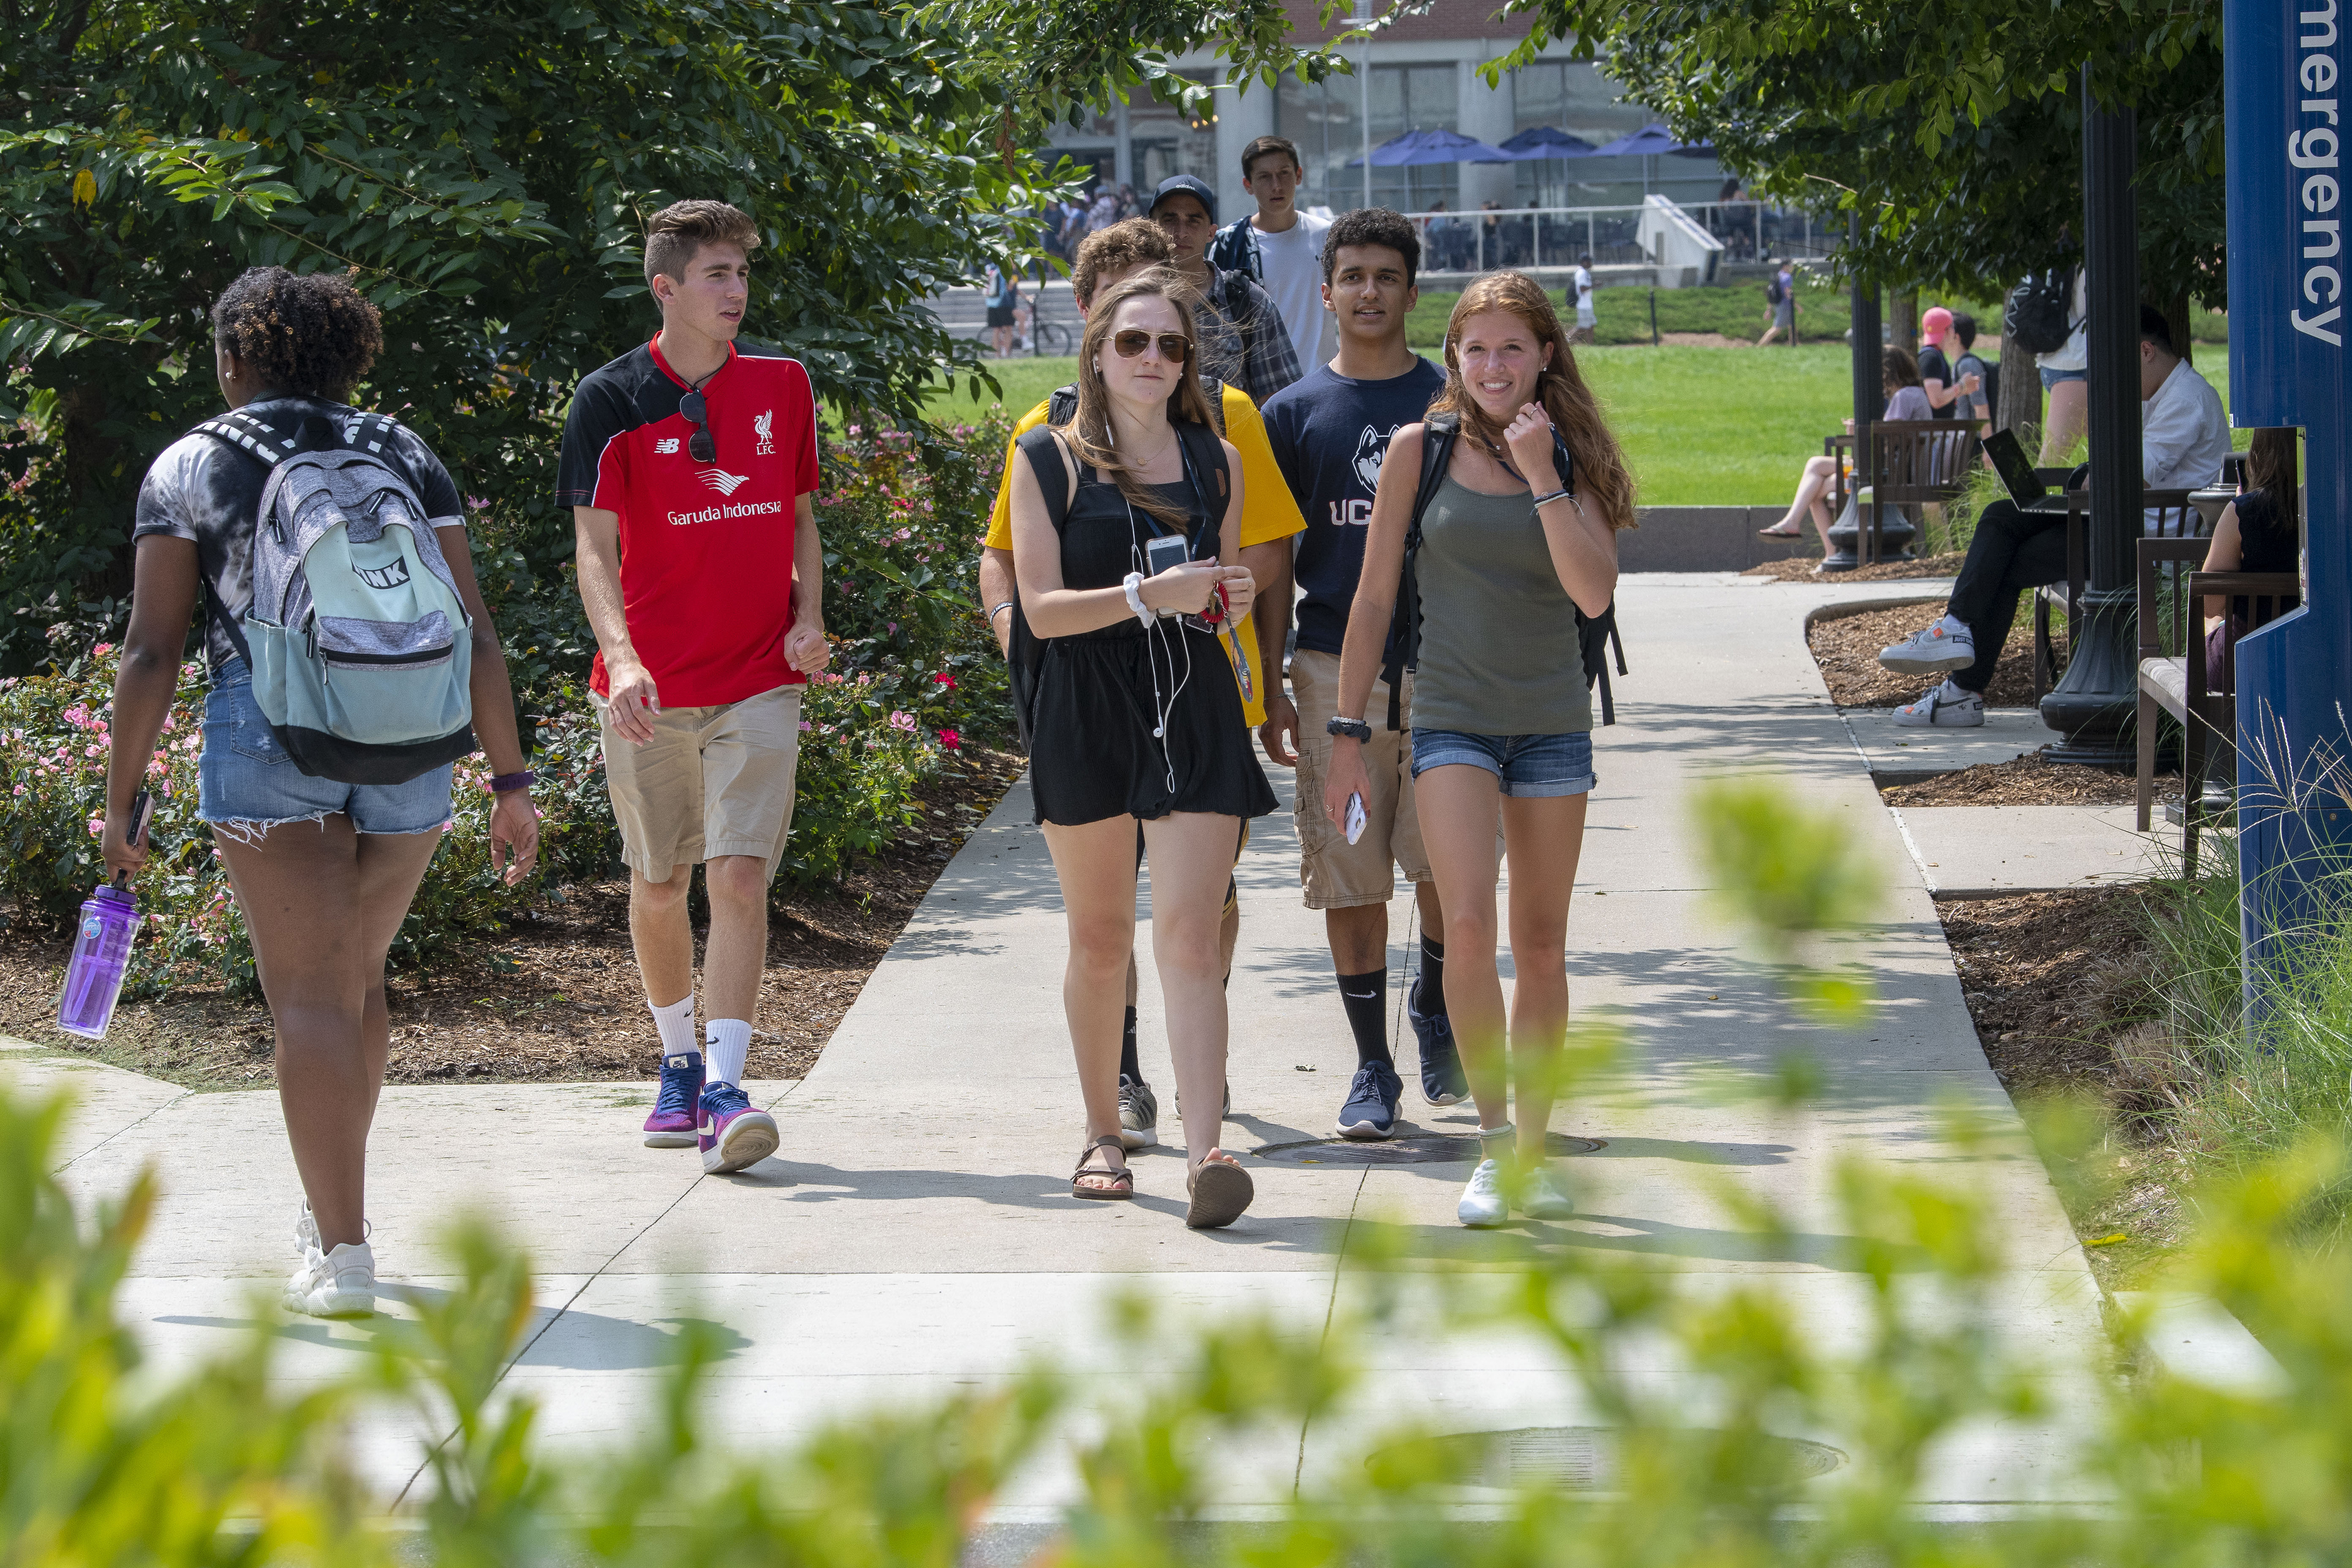 Students walking on campus on Aug. 27, 2018. (Sean Flynn/UConn Photo)